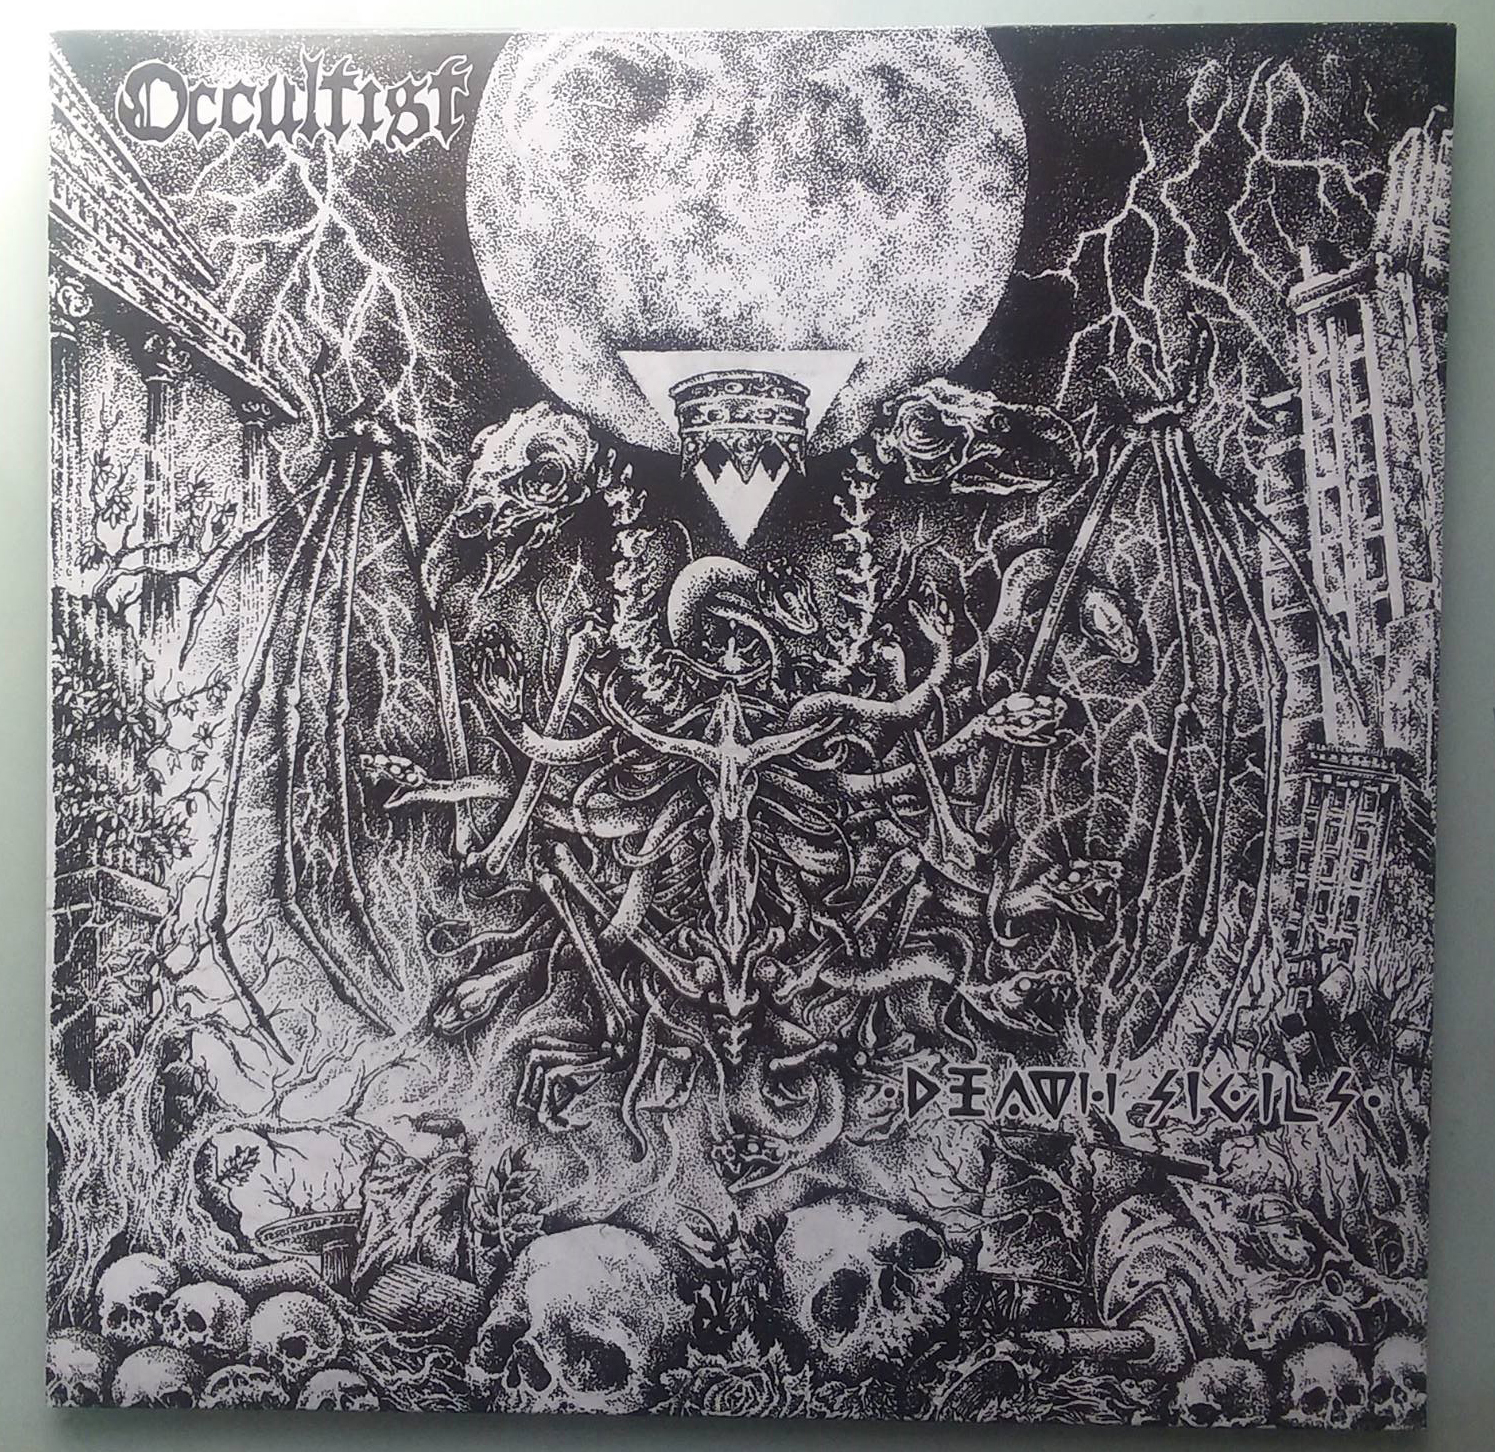 Occultist - Death Sigils (Primitive Way Records, 2013, Red Vinyl)